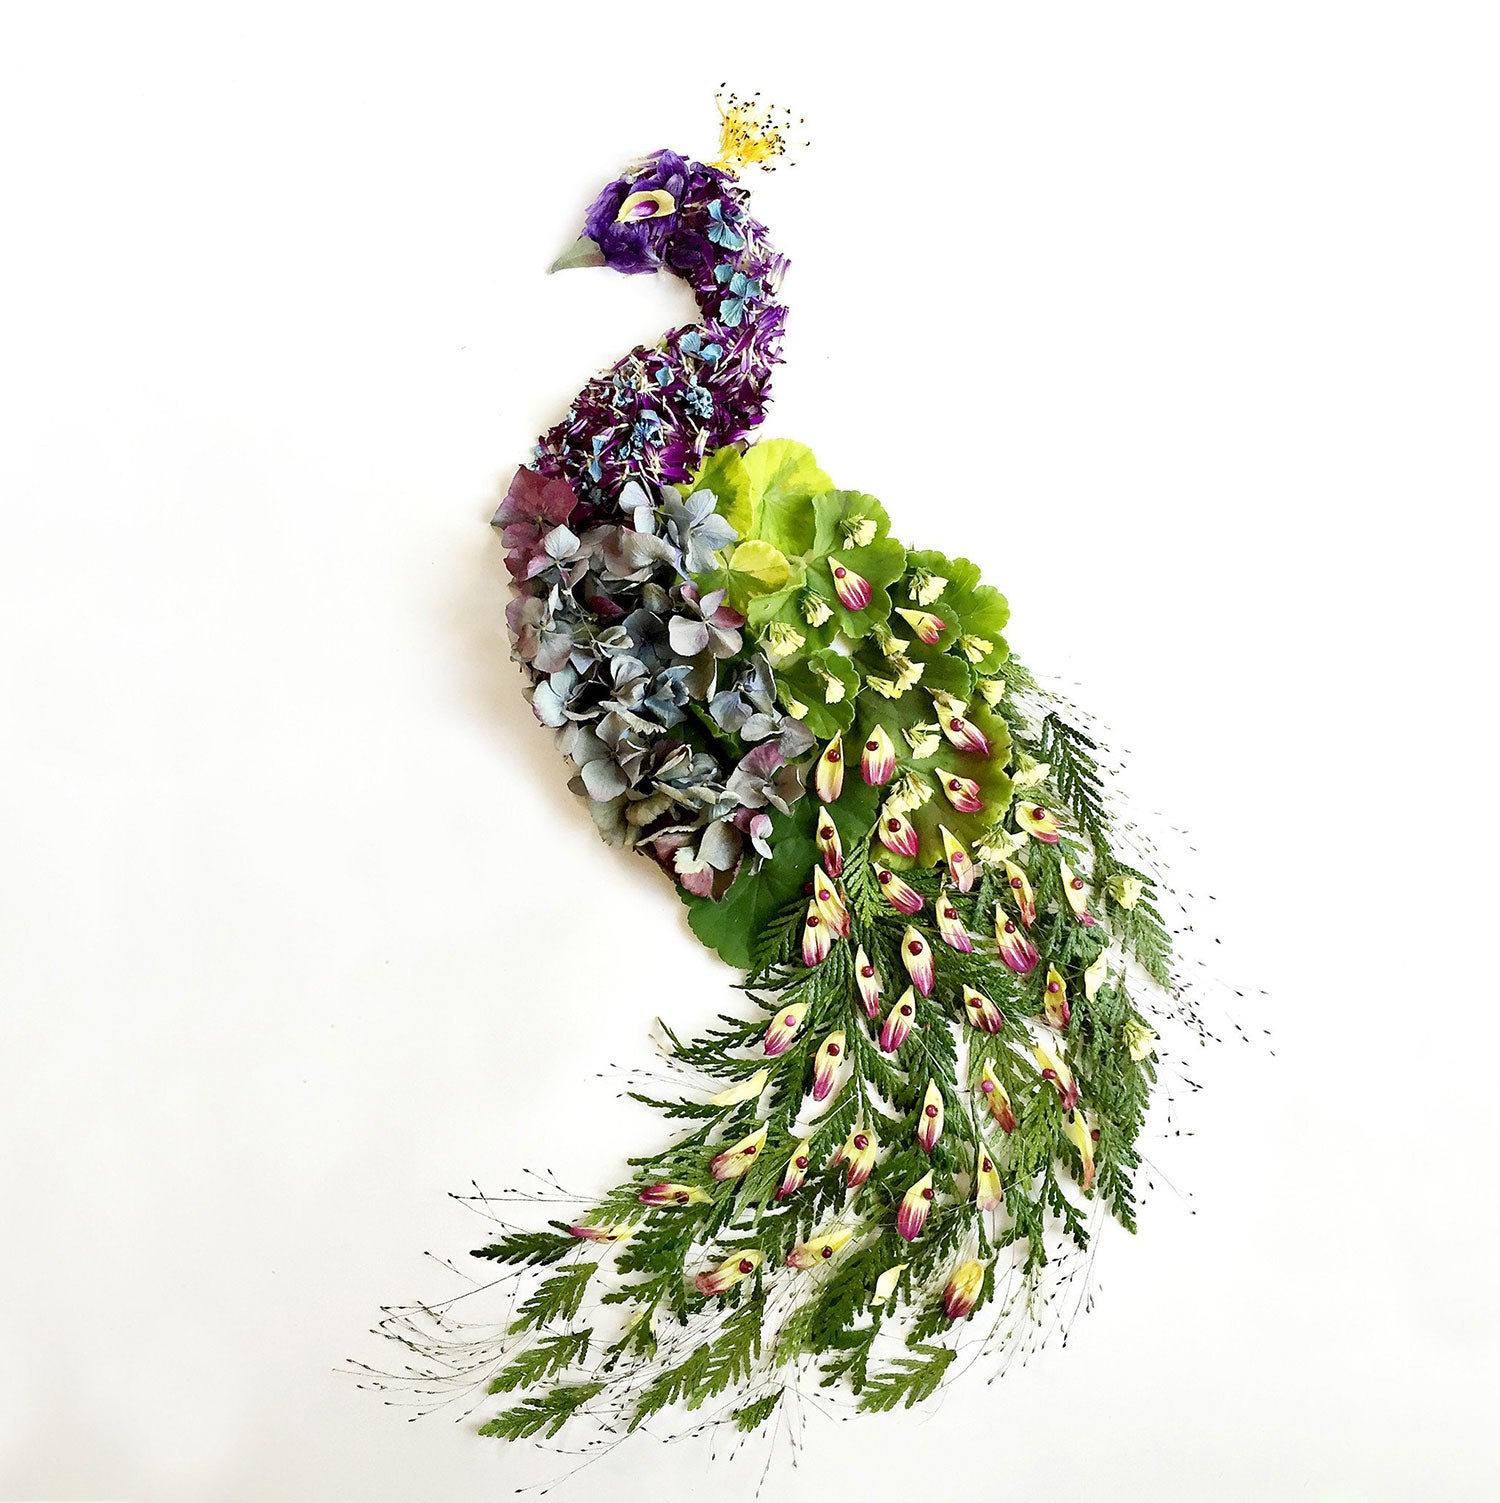 Peacock art by flora.forager